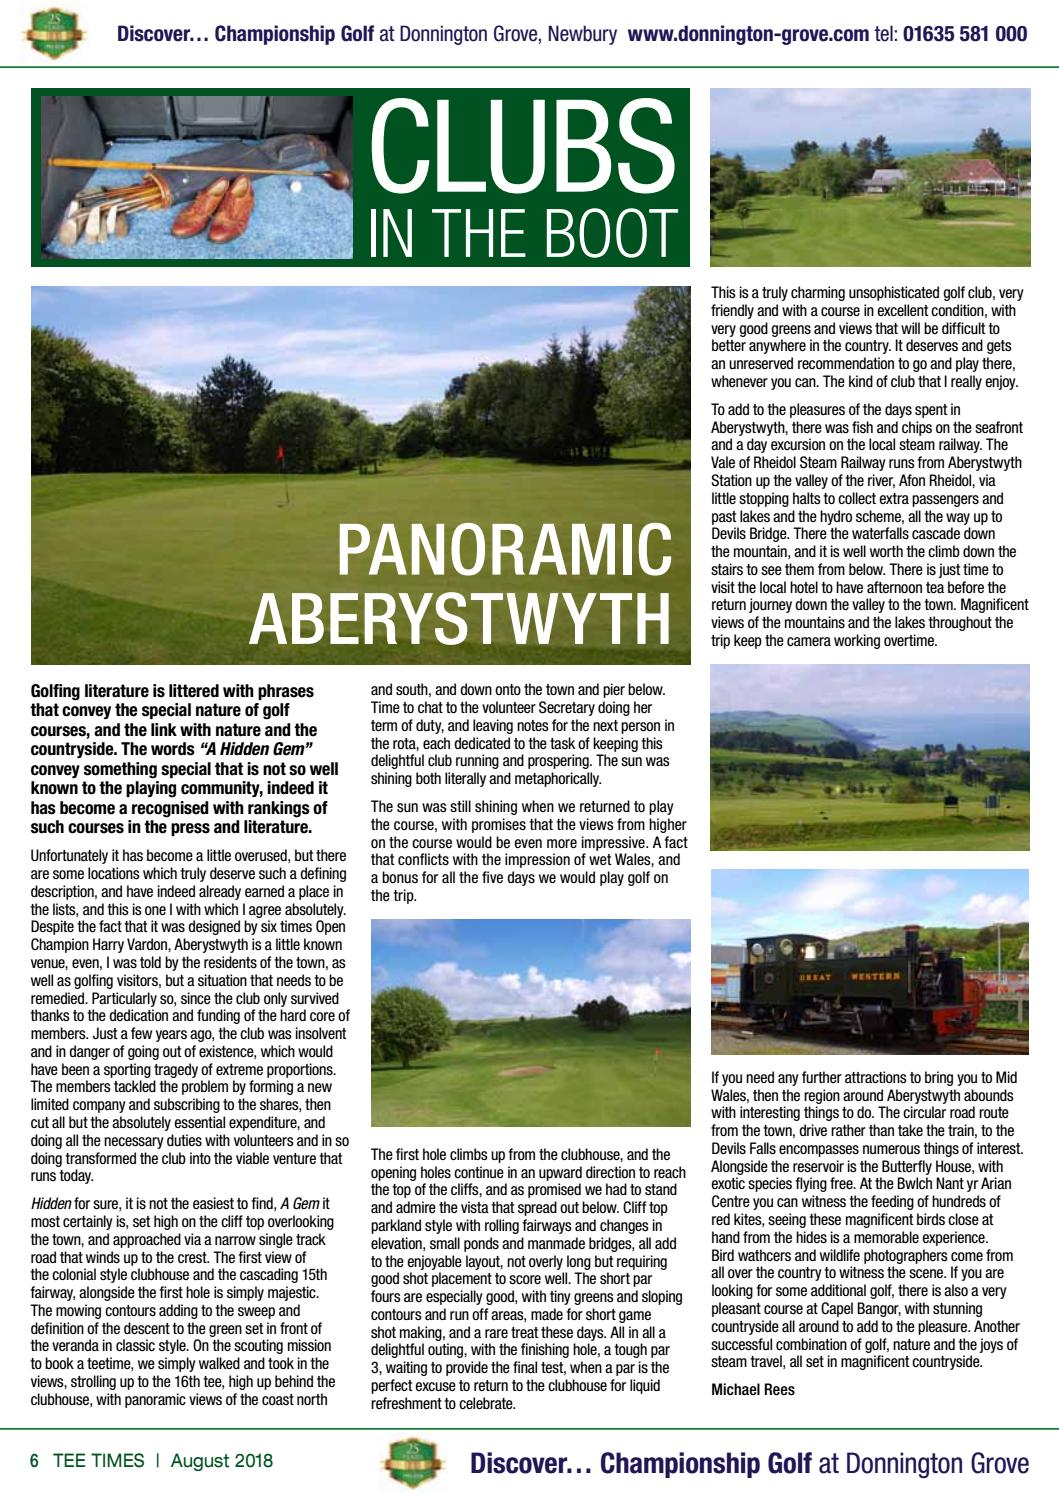 Tee Times Golf Magazine, August 2018 by Tee Times Golf